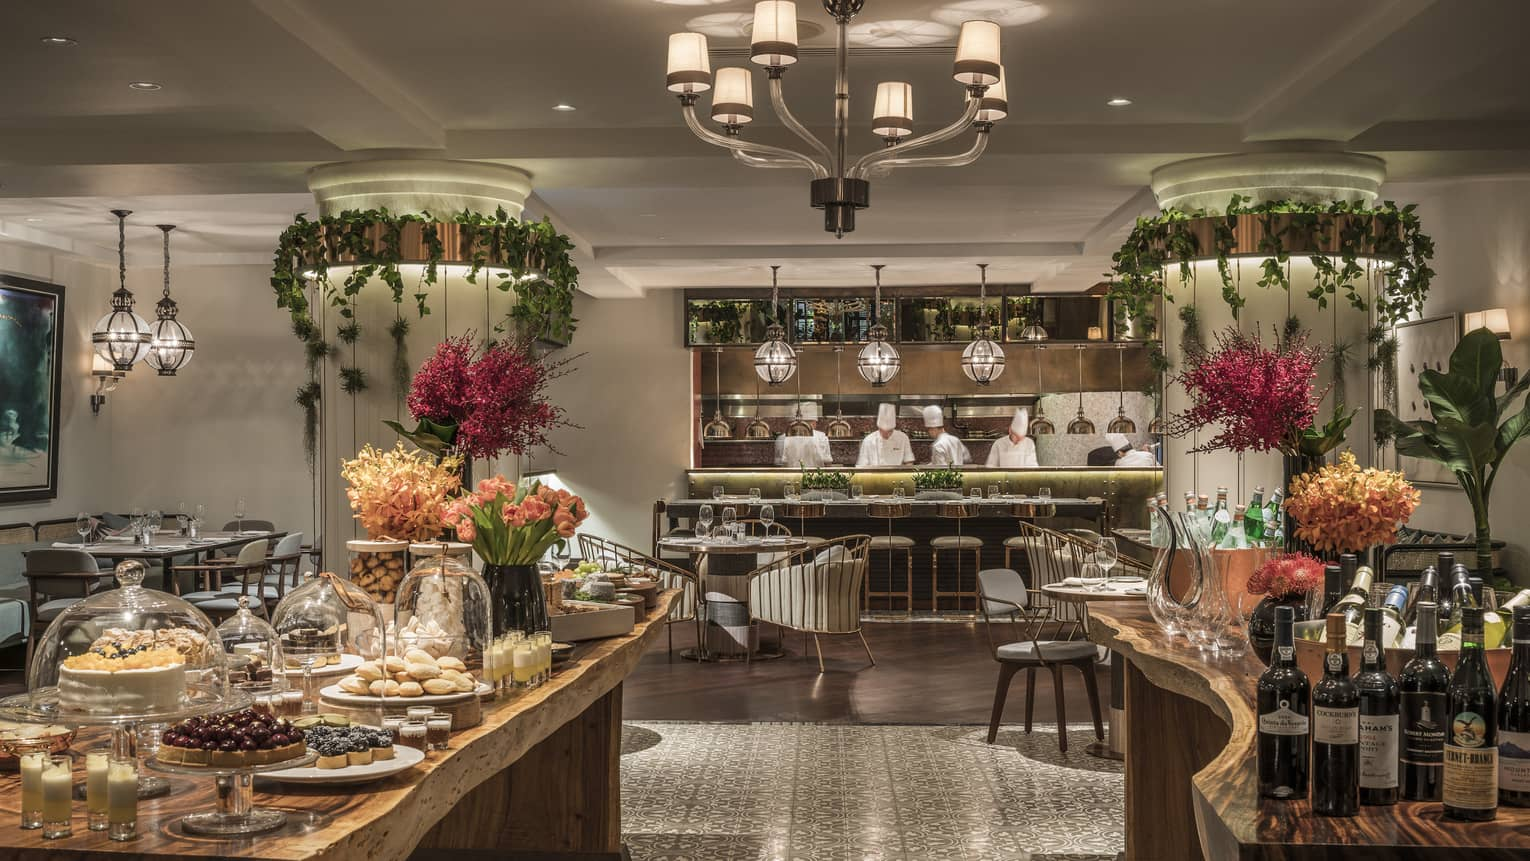 The One Ninety Restaurant, a lush, botanical-inspired modern Asian brasserie serving wine and assorted pastries